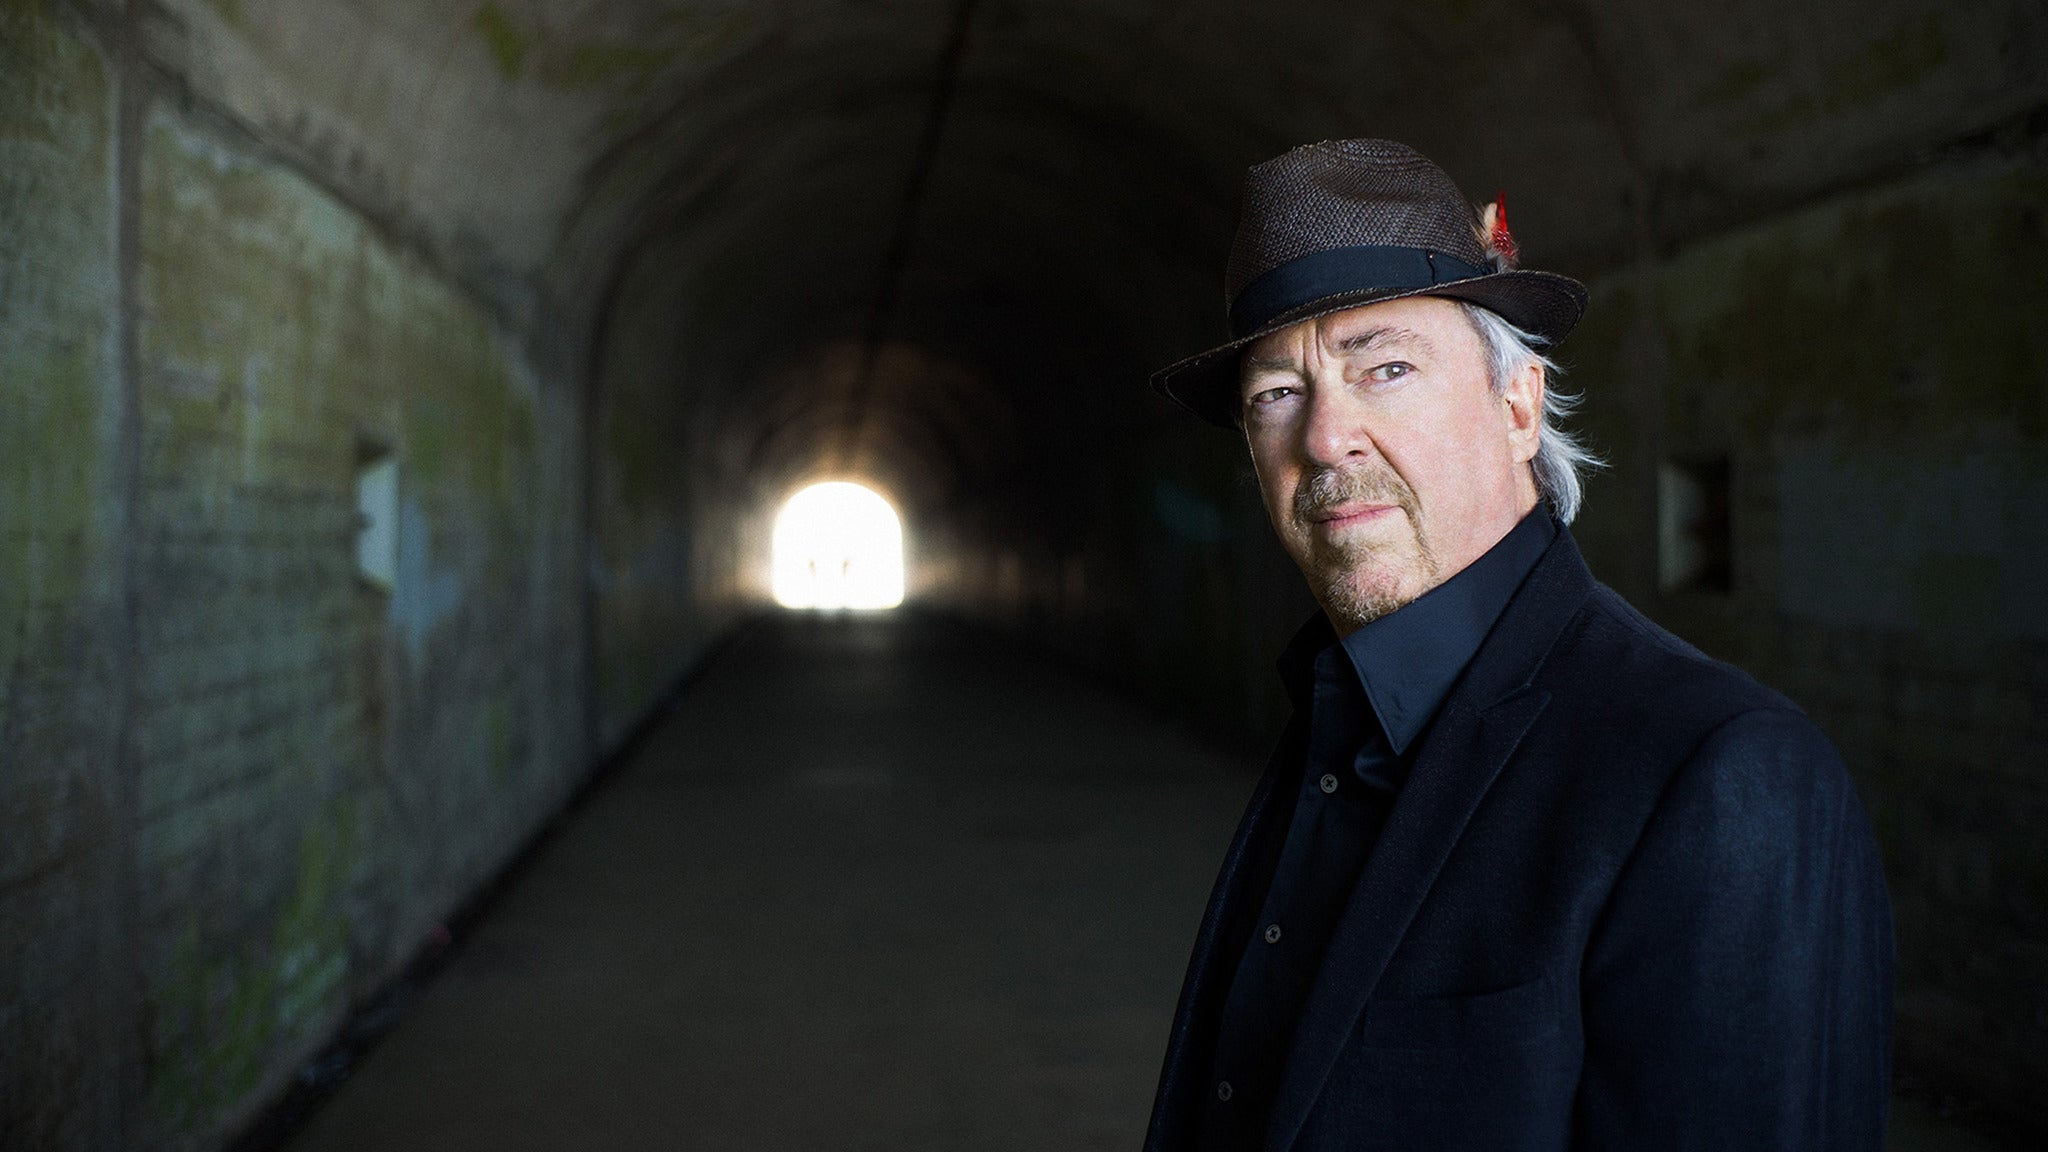 Boz Scaggs at Pikes Peak Center